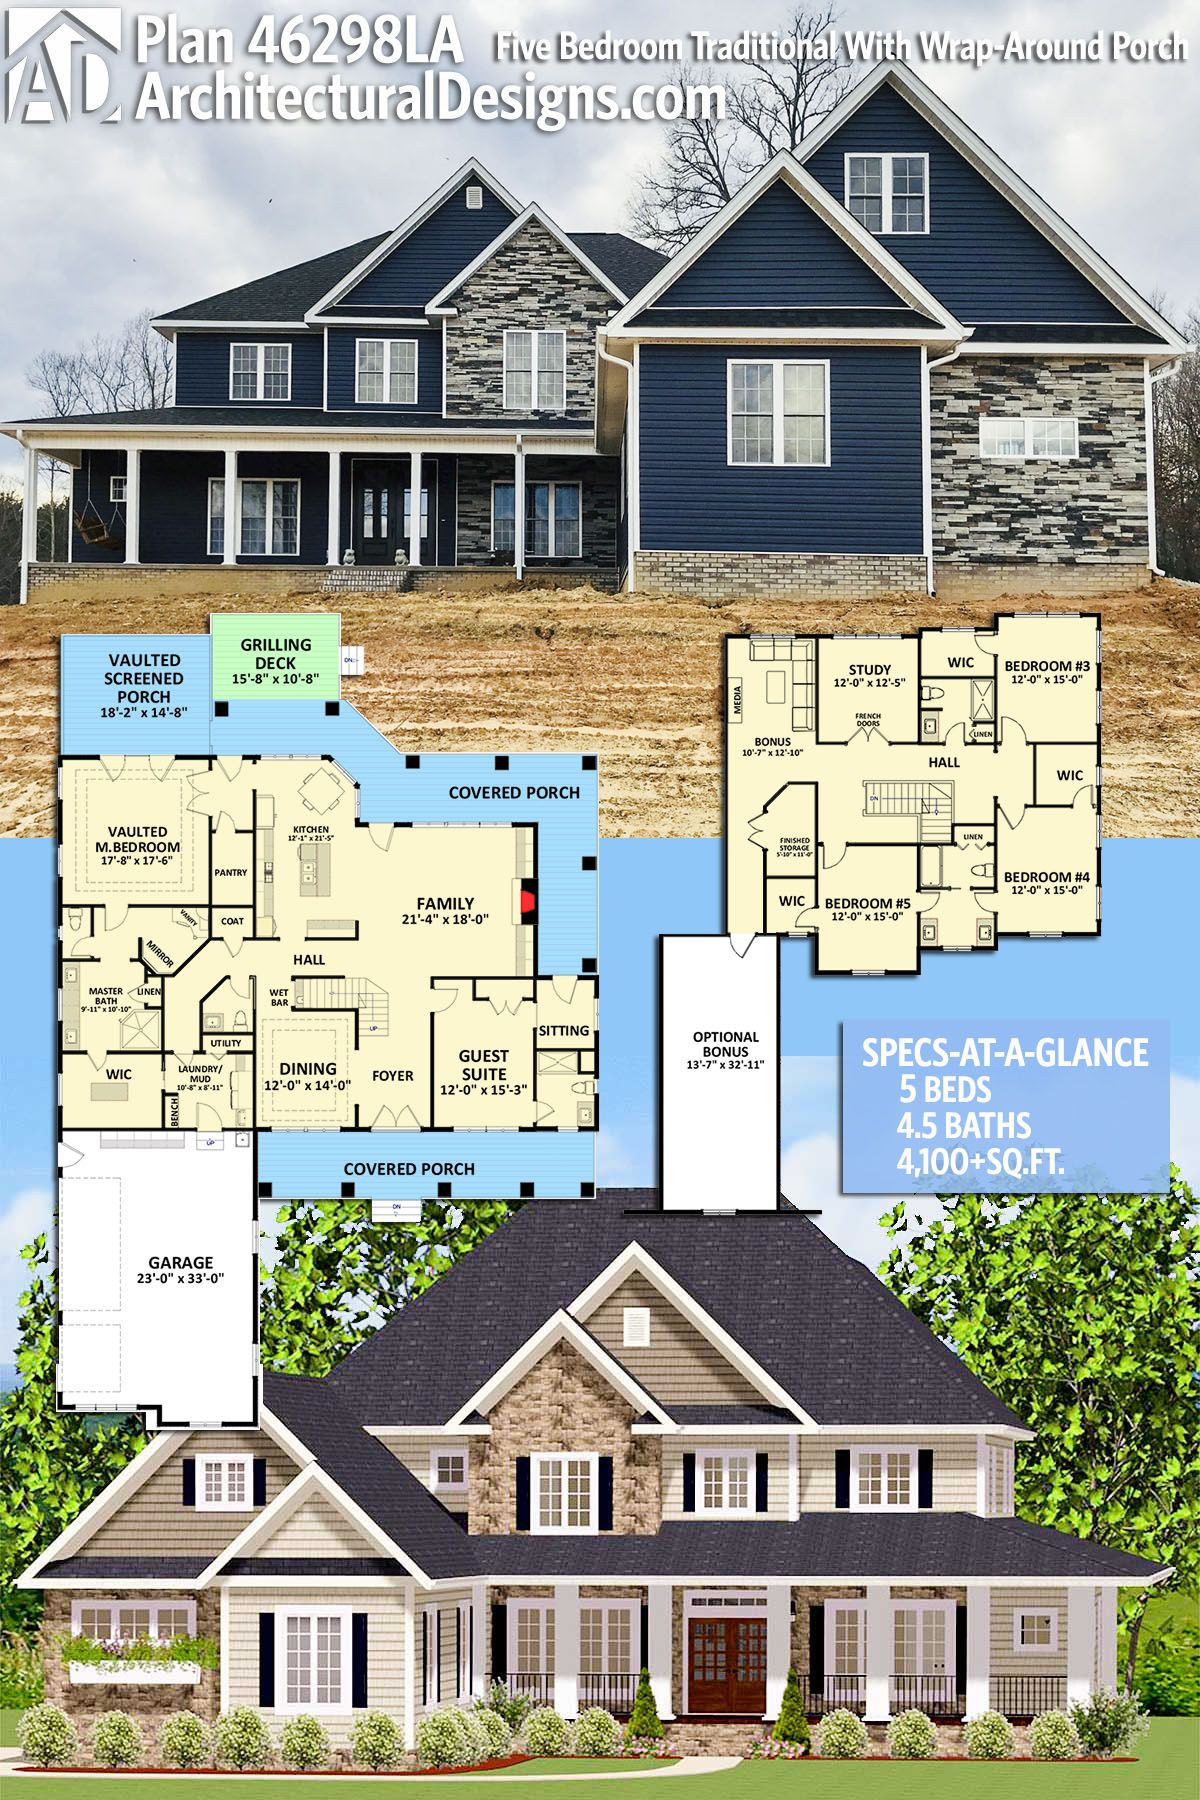 Plan 46298la Five Bedroom Traditional With Wrap Around Porch Architectural Design House Plans House Plans Dream House Plans